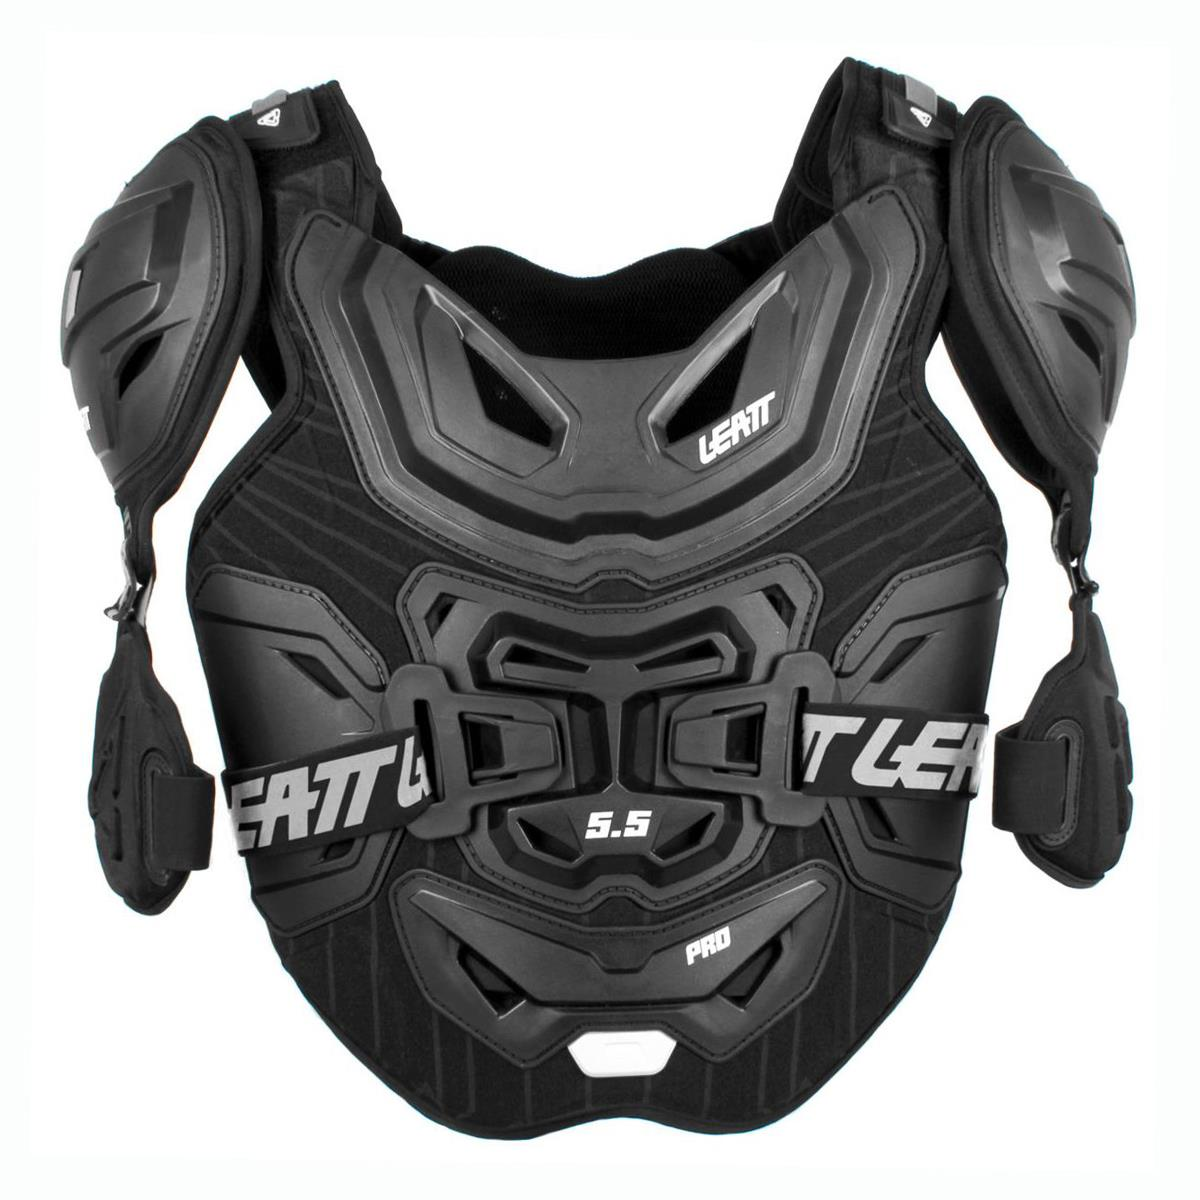 Leatt MX and Enduro 5.5 Pro Chest Protection